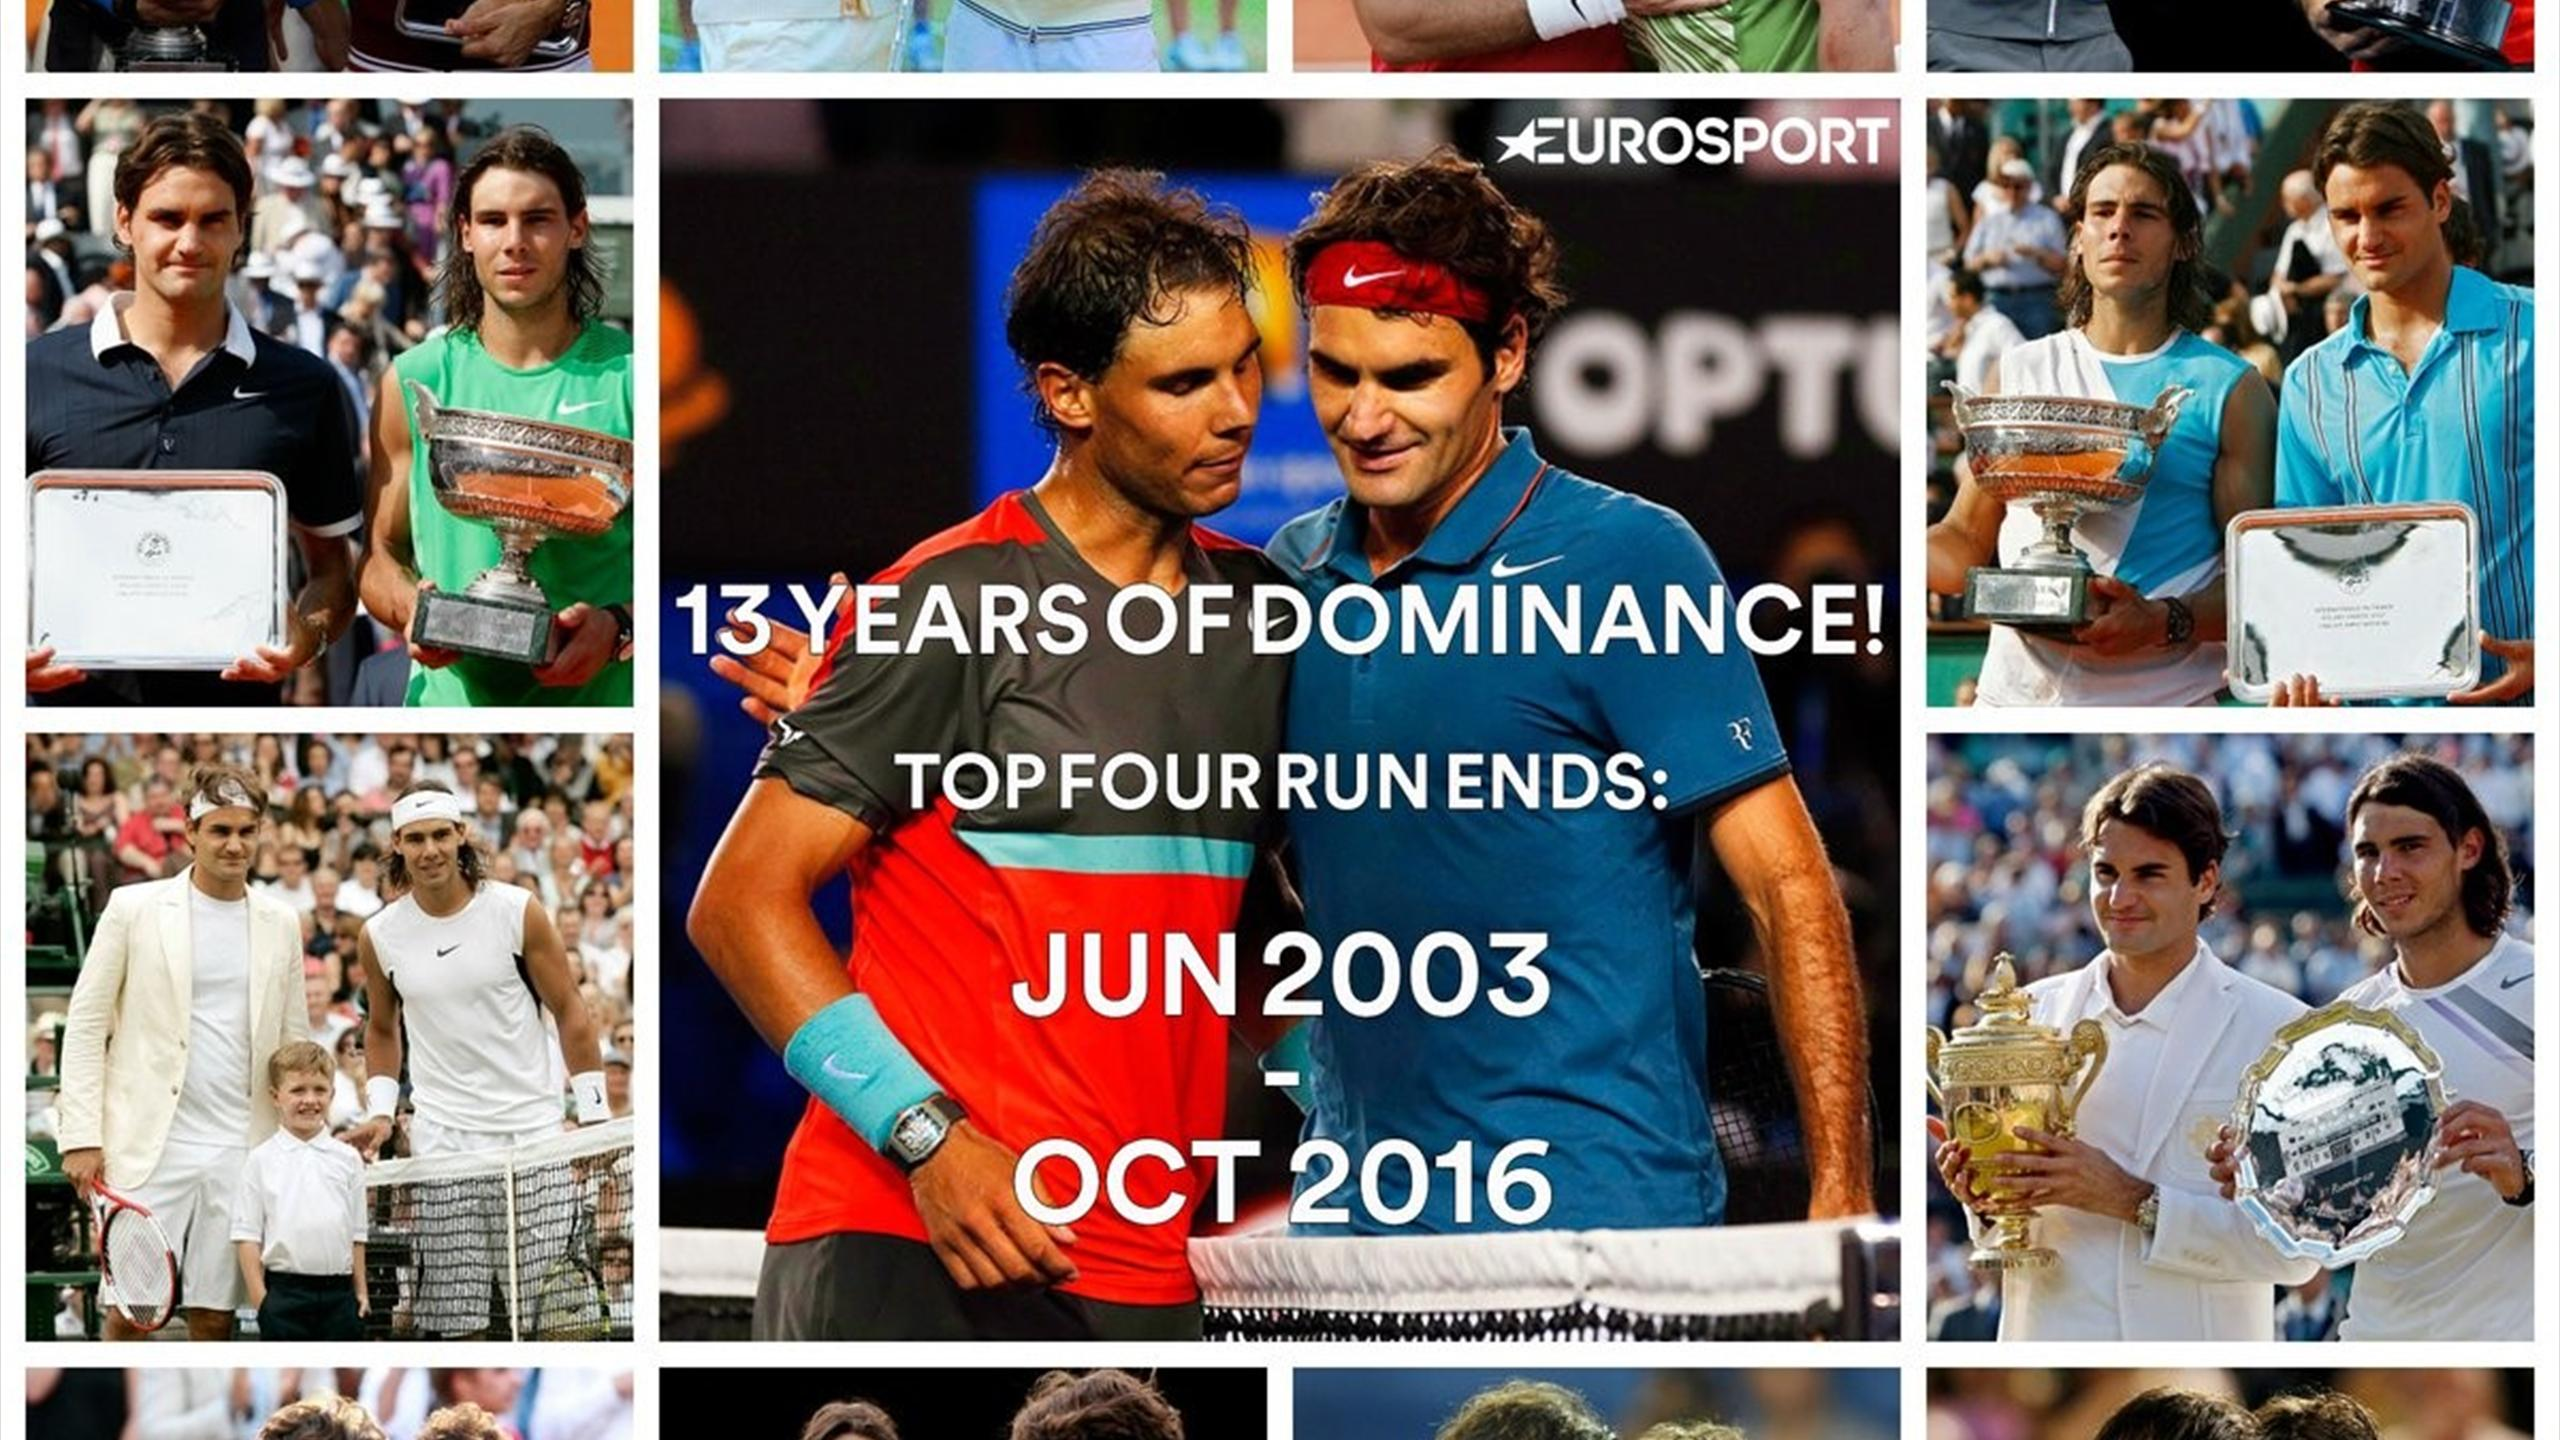 Celebrating Roger Federer and Rafael Nadal's dominance with both out of the world's top four - for the first time in 13 years